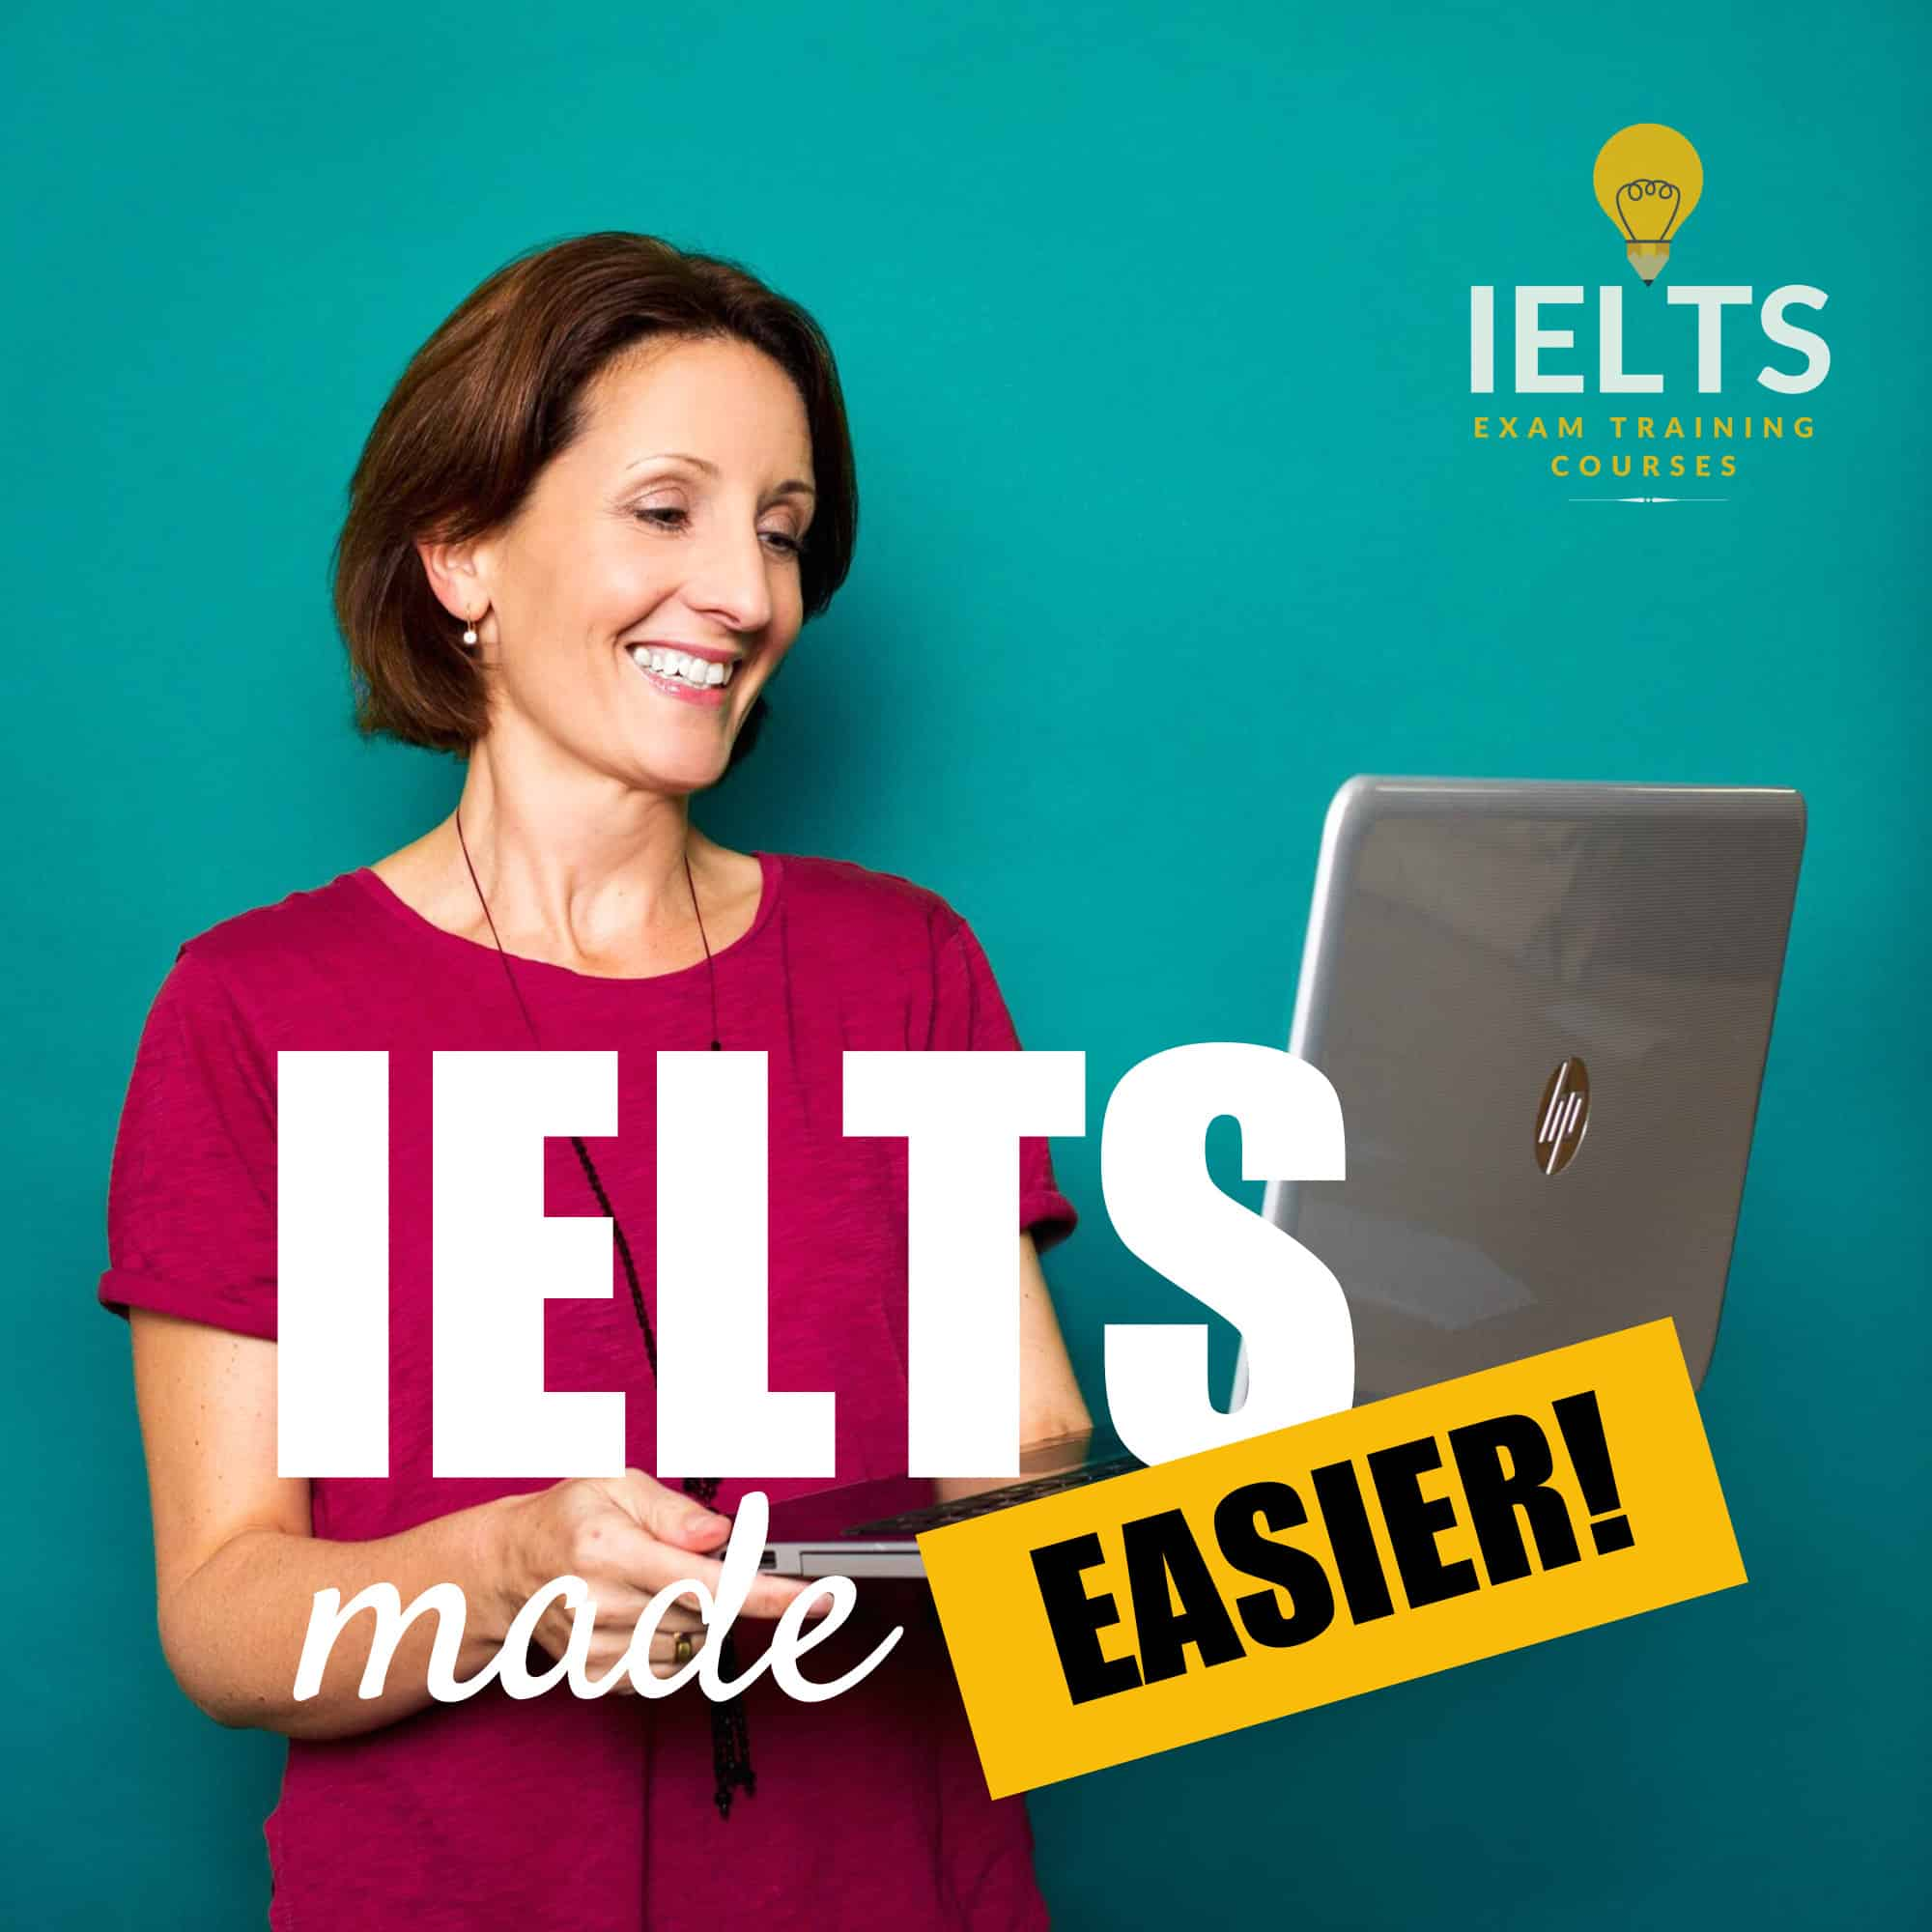 Where do I start? Building your IELTS Vocabulary for Reading - IELTS